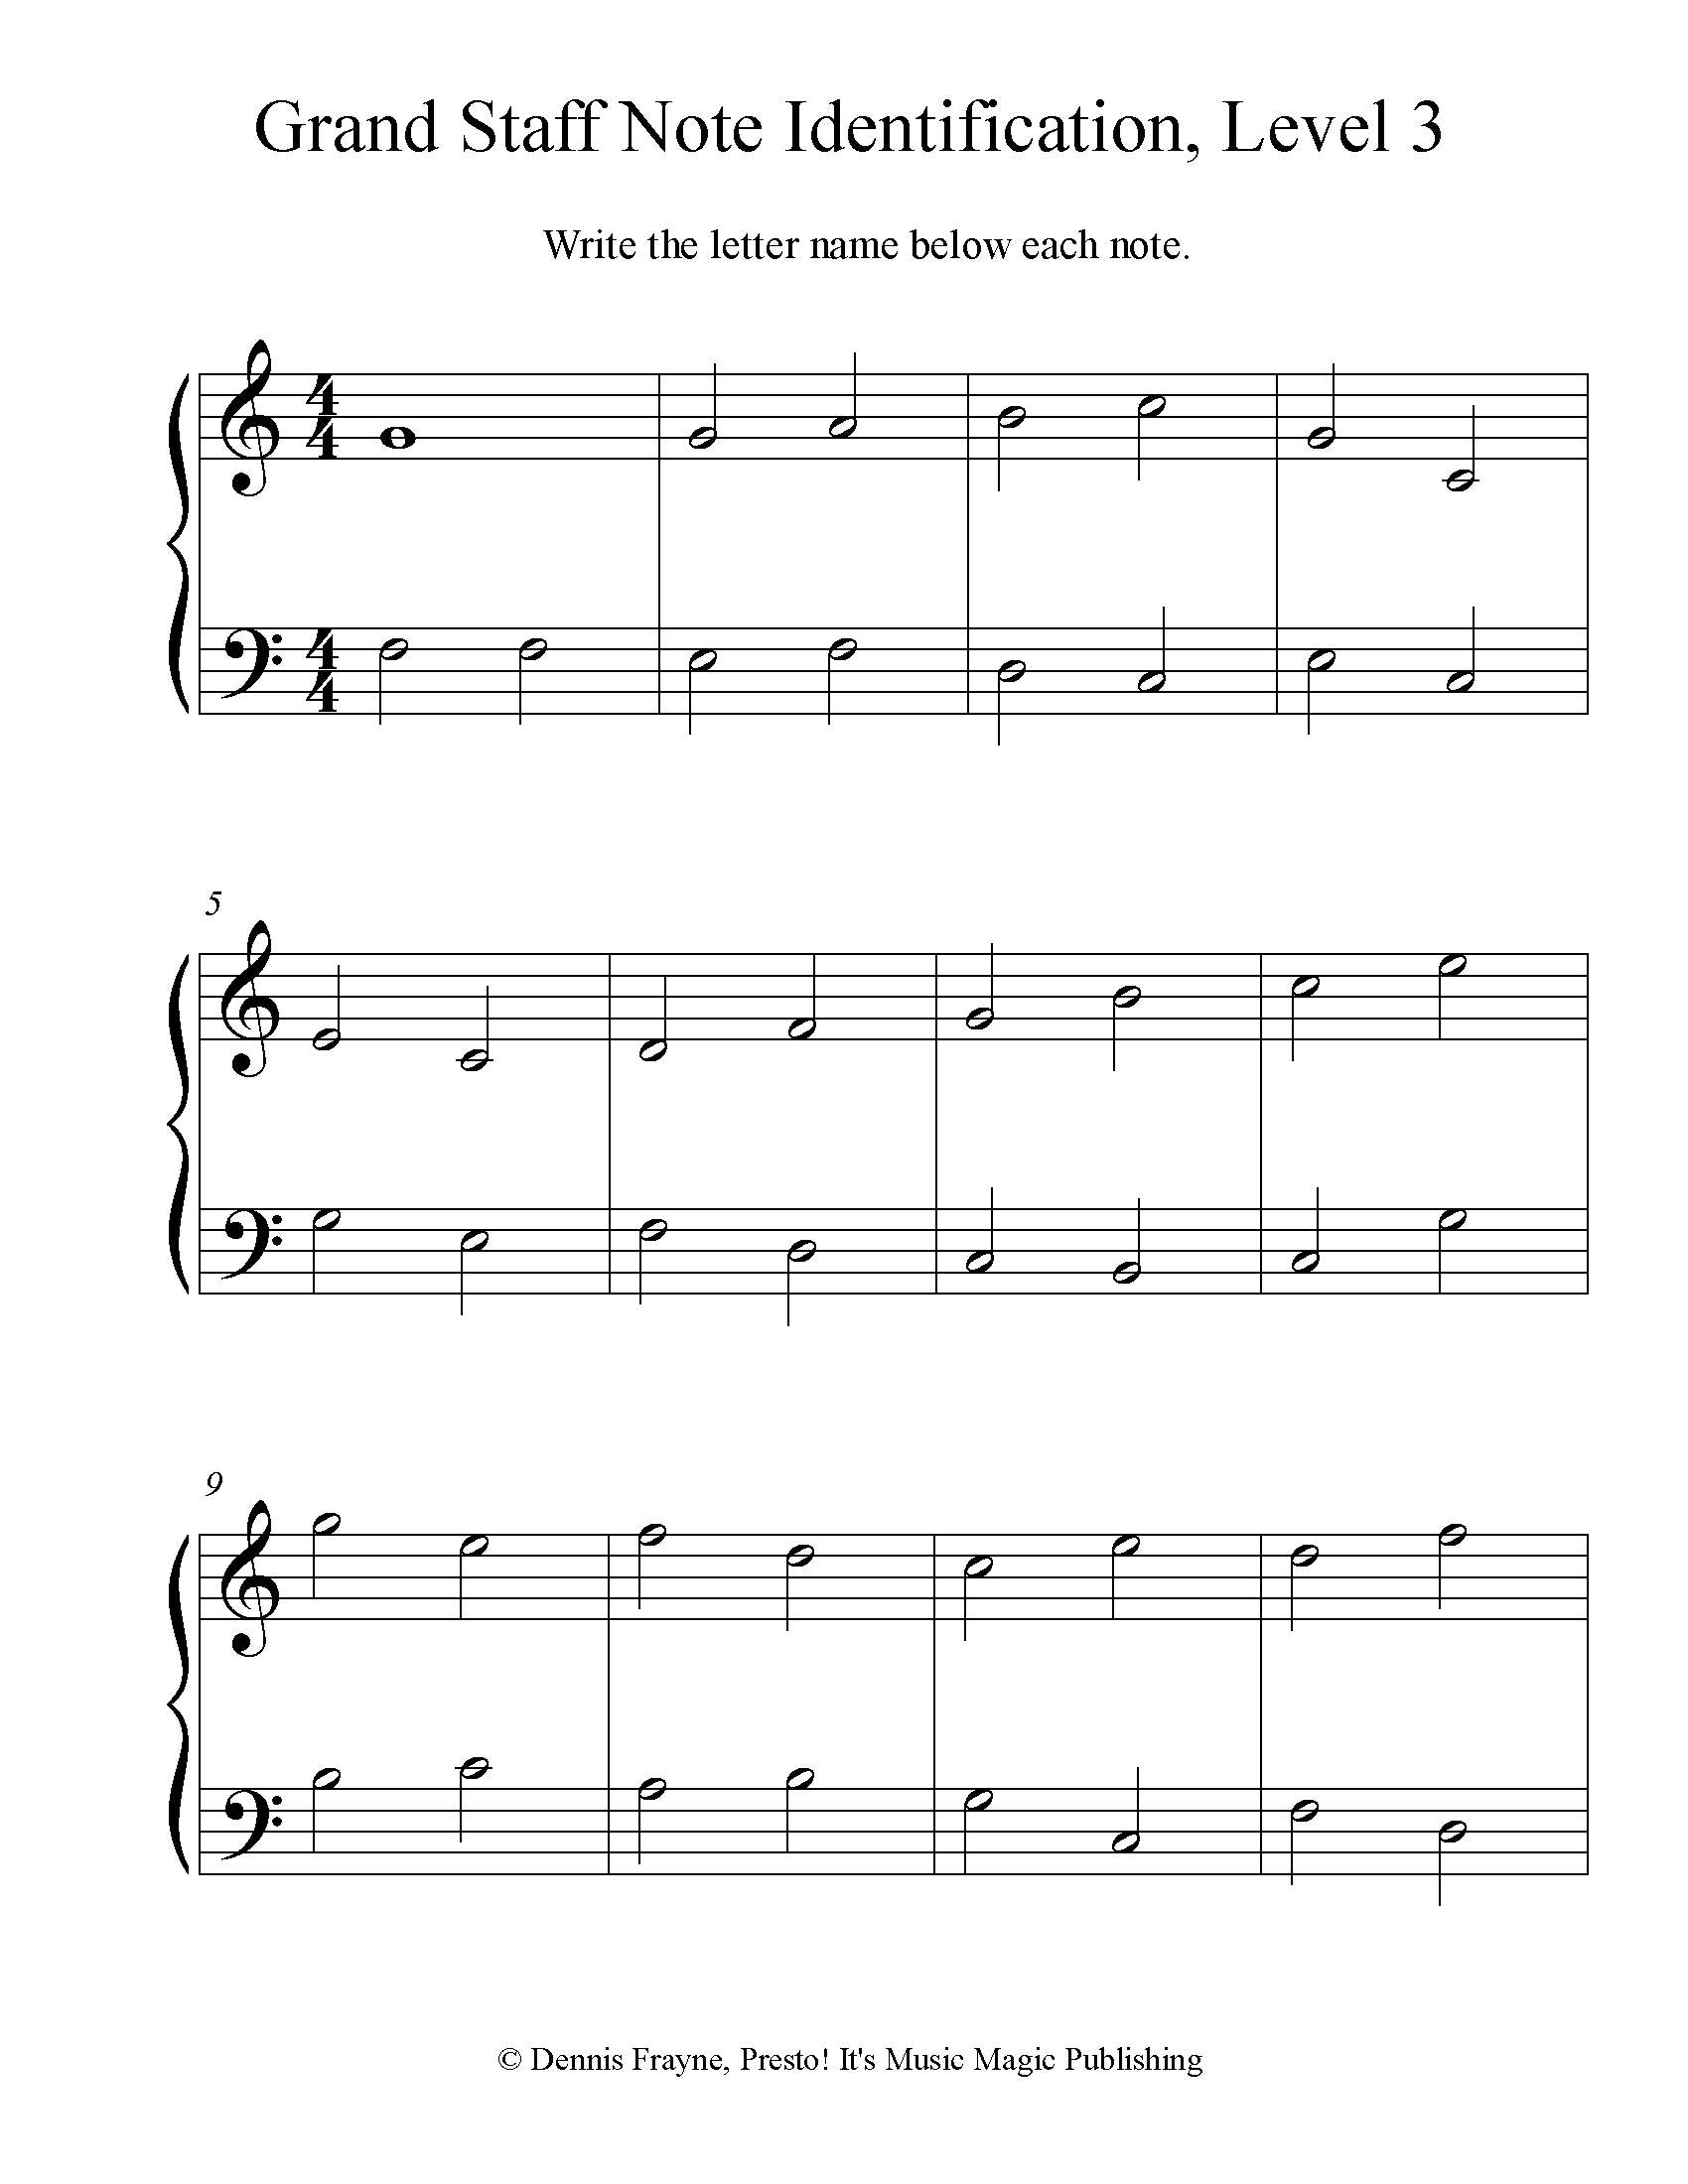 Grand Staff Note Identification Practice Worksheet, Level 3 6 pages